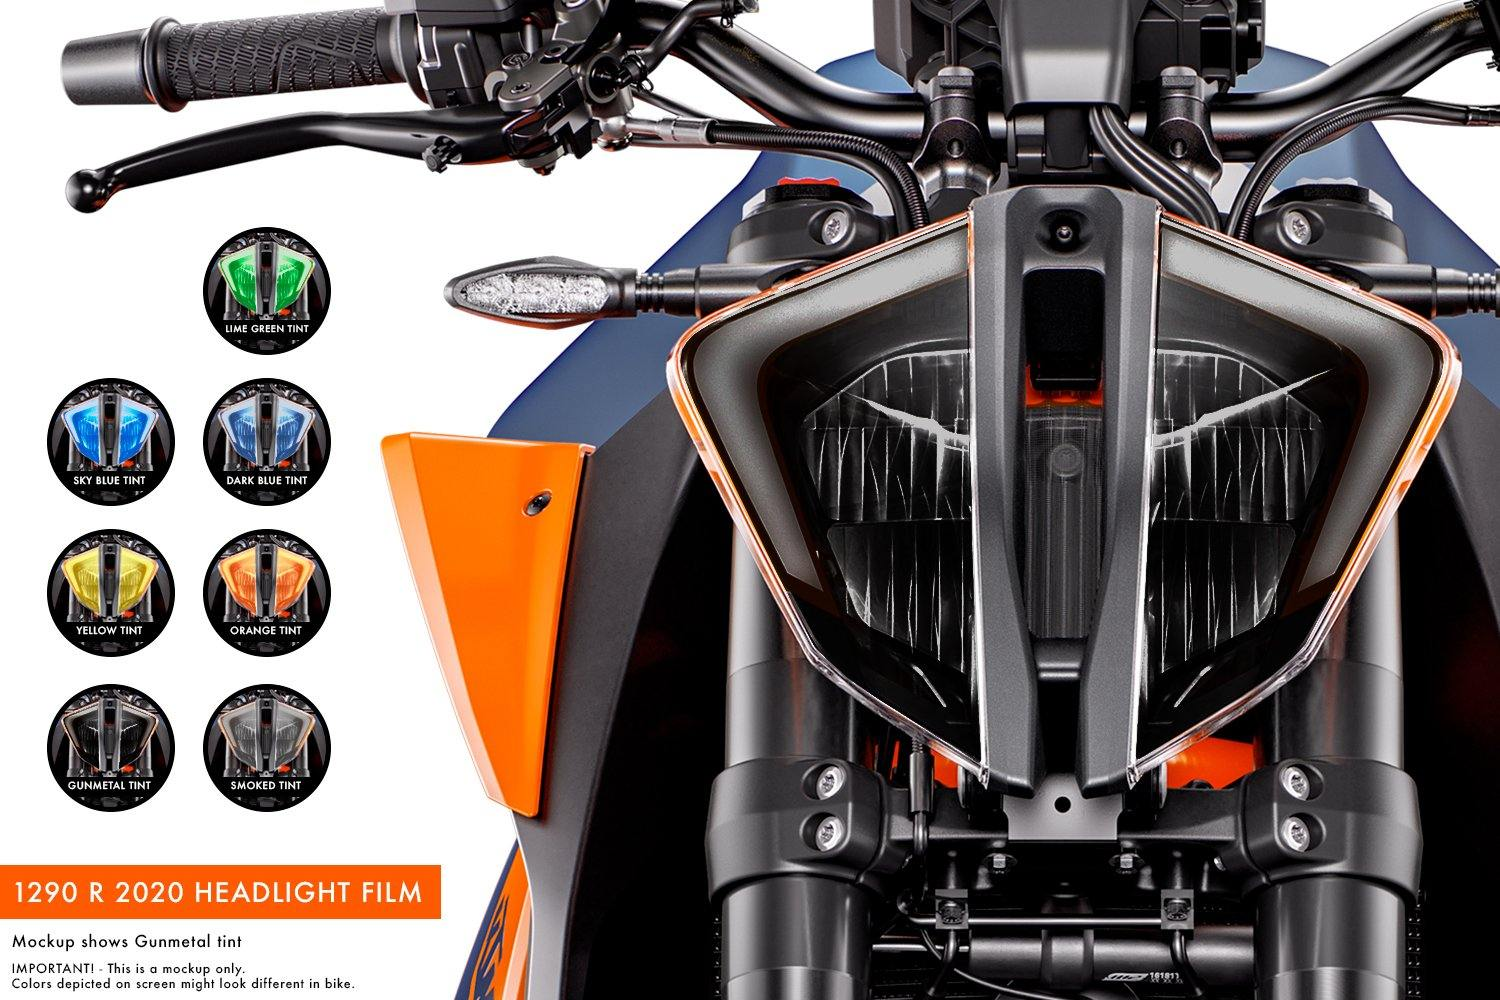 KTM 1290 Superduke R (2020) Premium Headlight tinted film